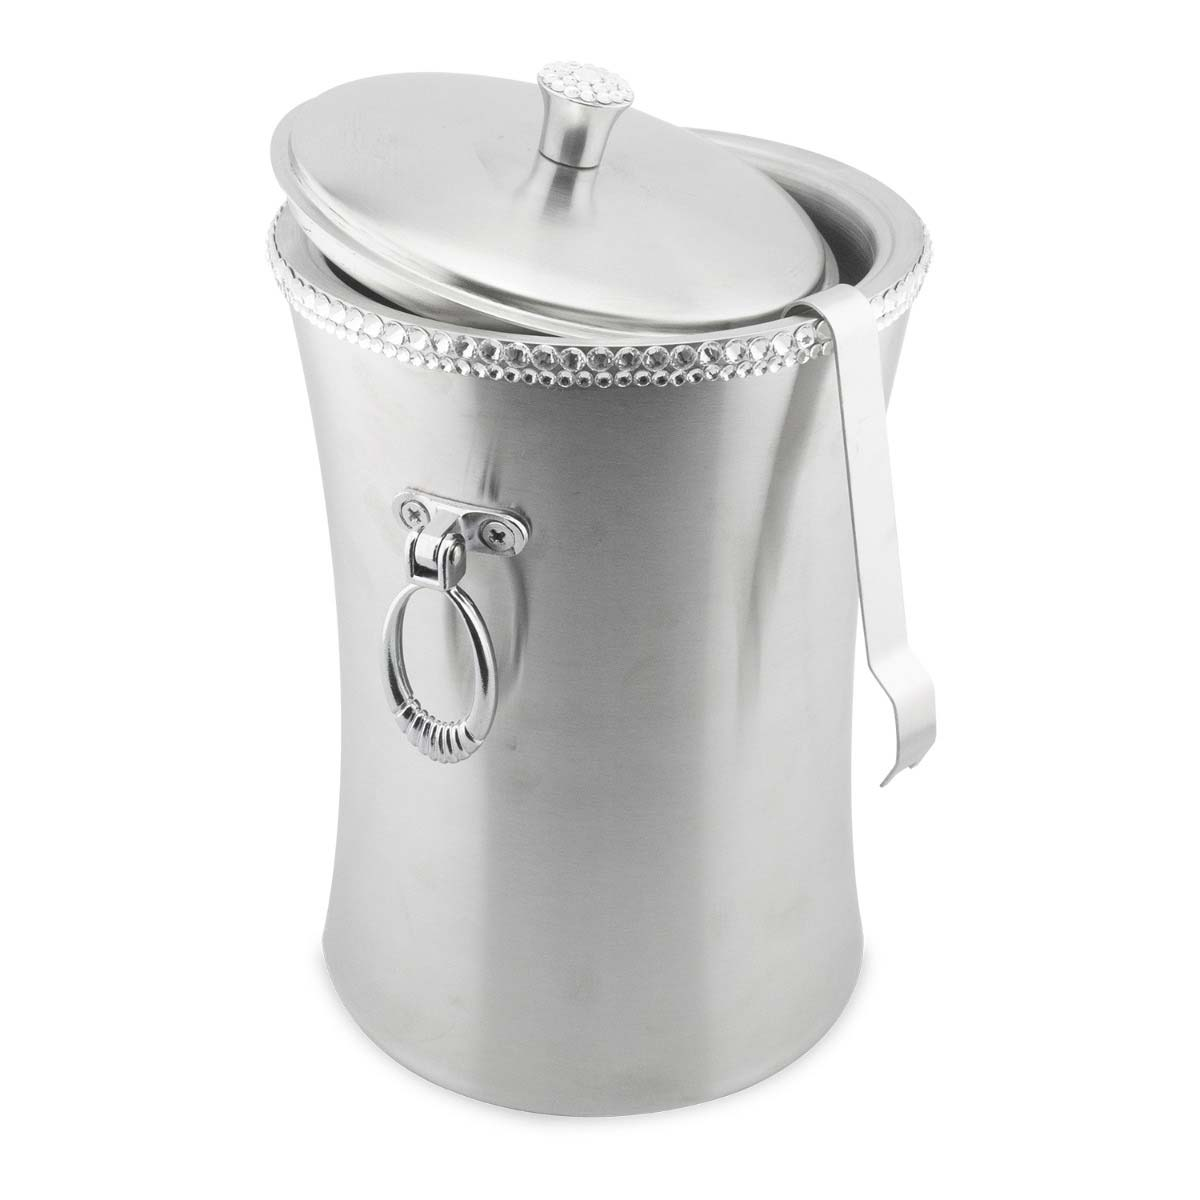 Sparkles Home Stainless Steel Ice Bucket